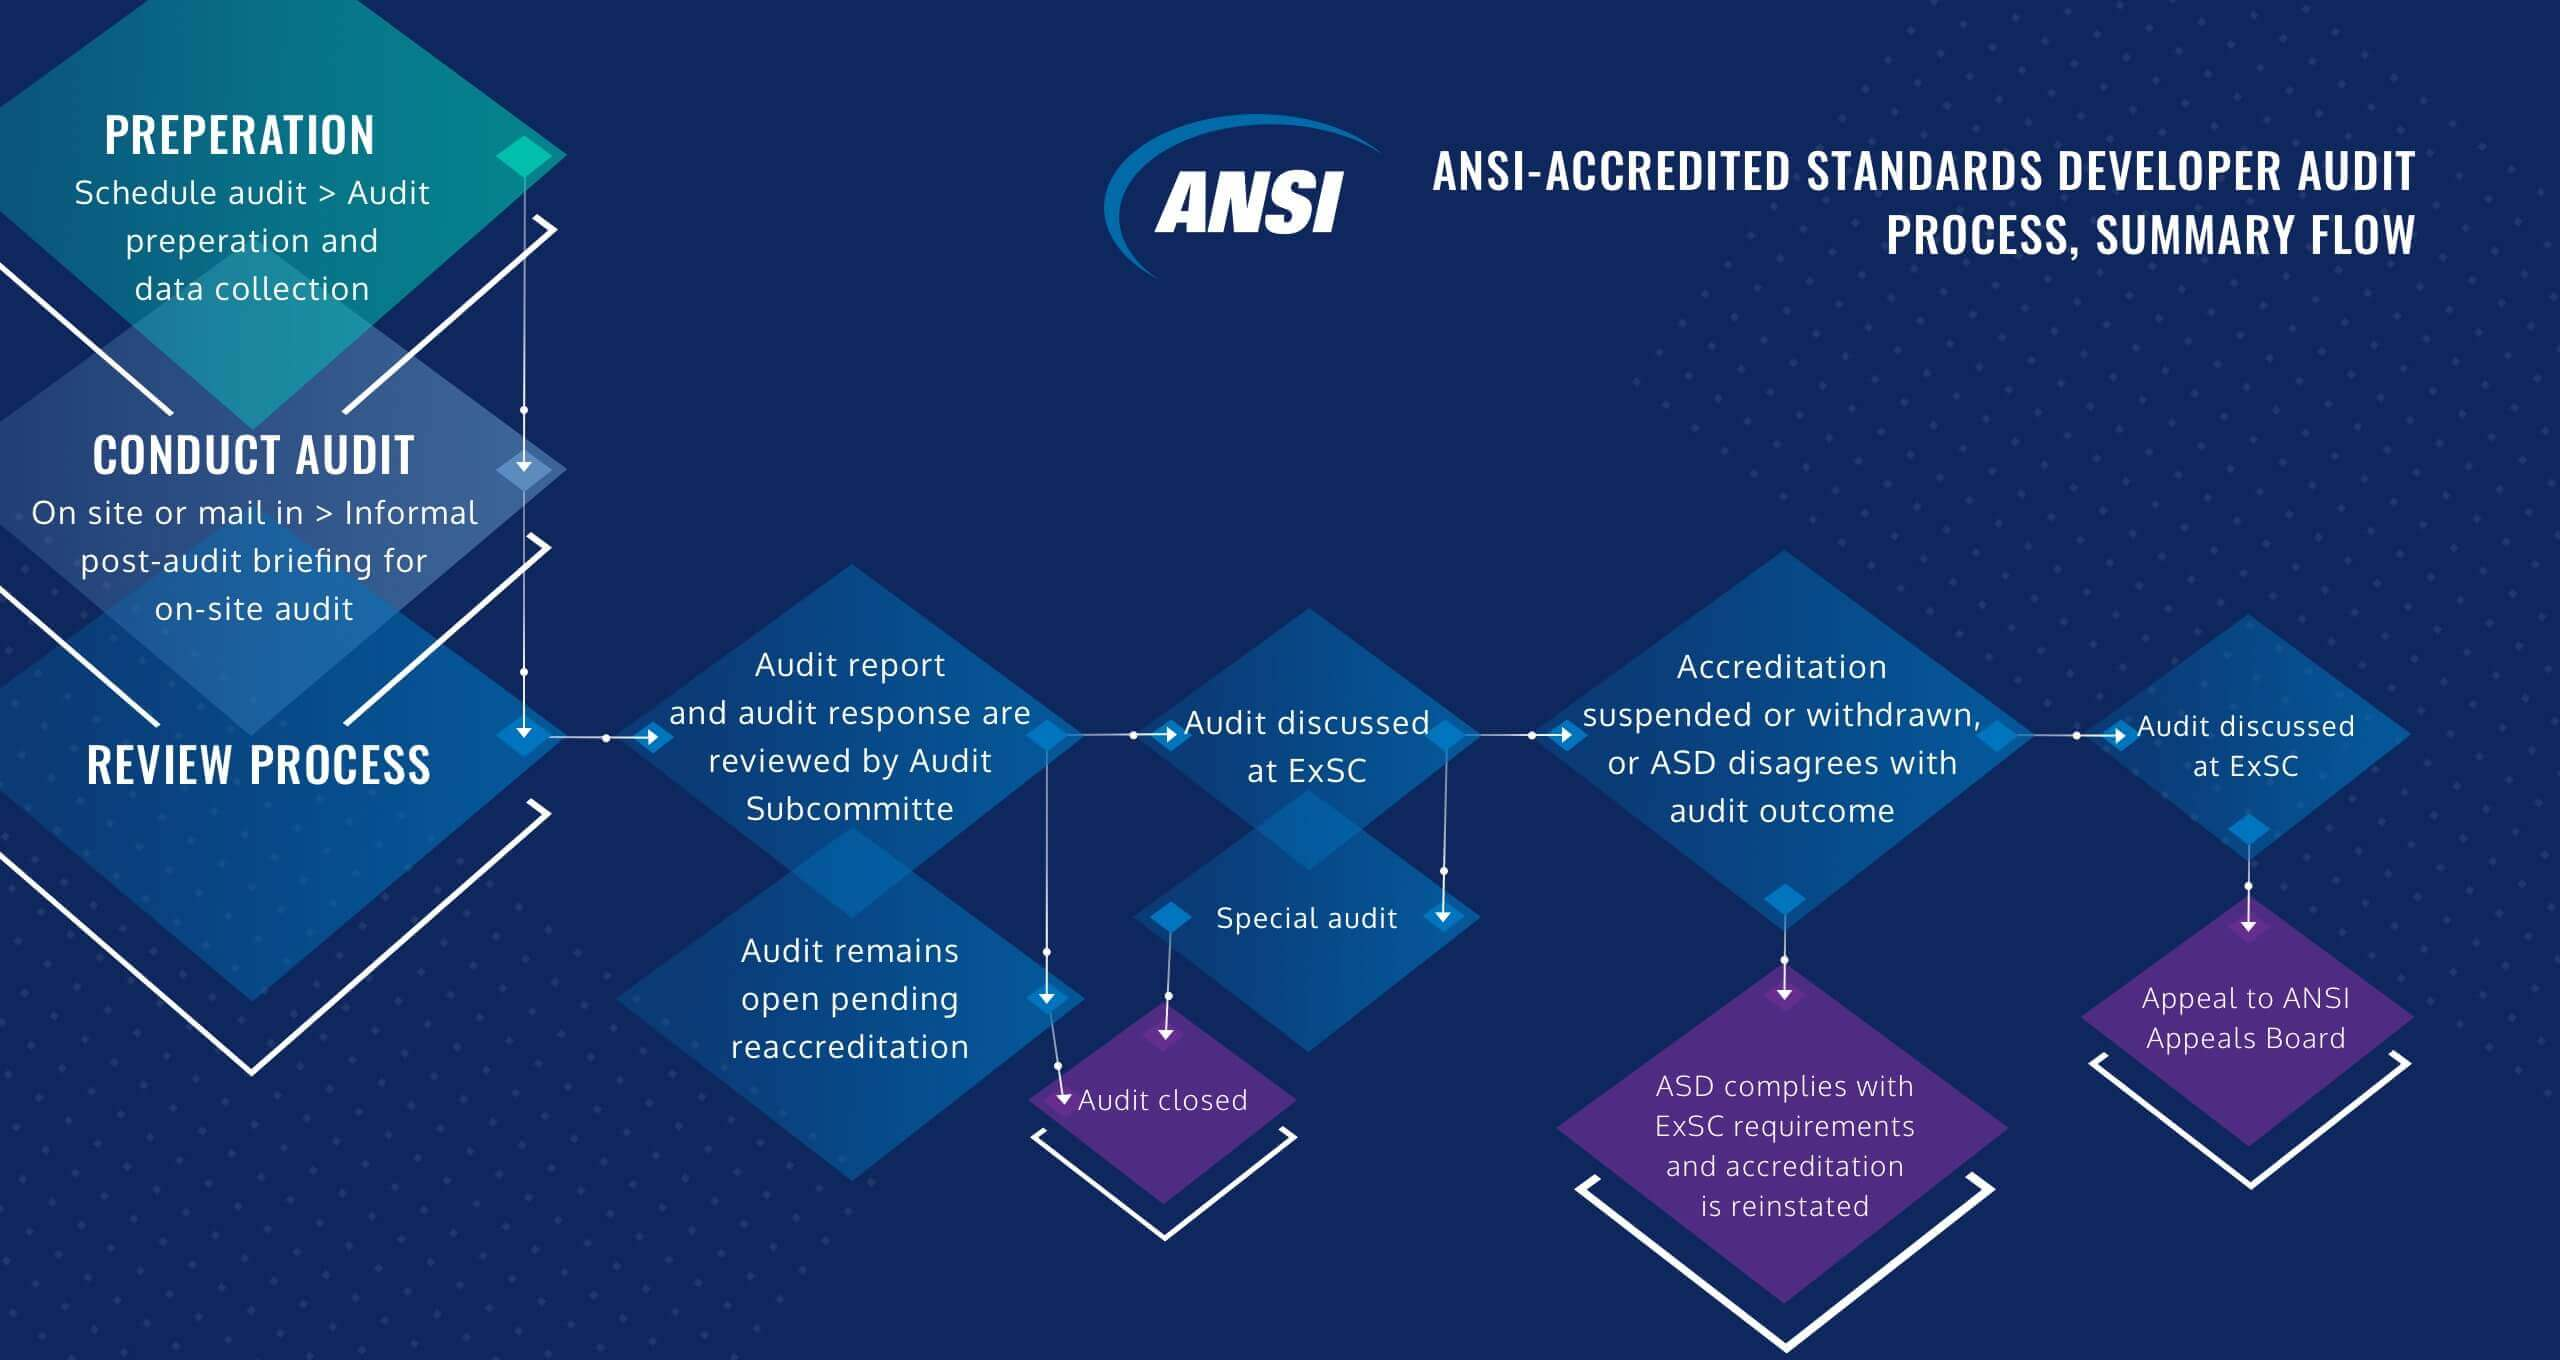 A flow-chart showing a summary of the ANSI-Accredited Standards Developer Audit Process.